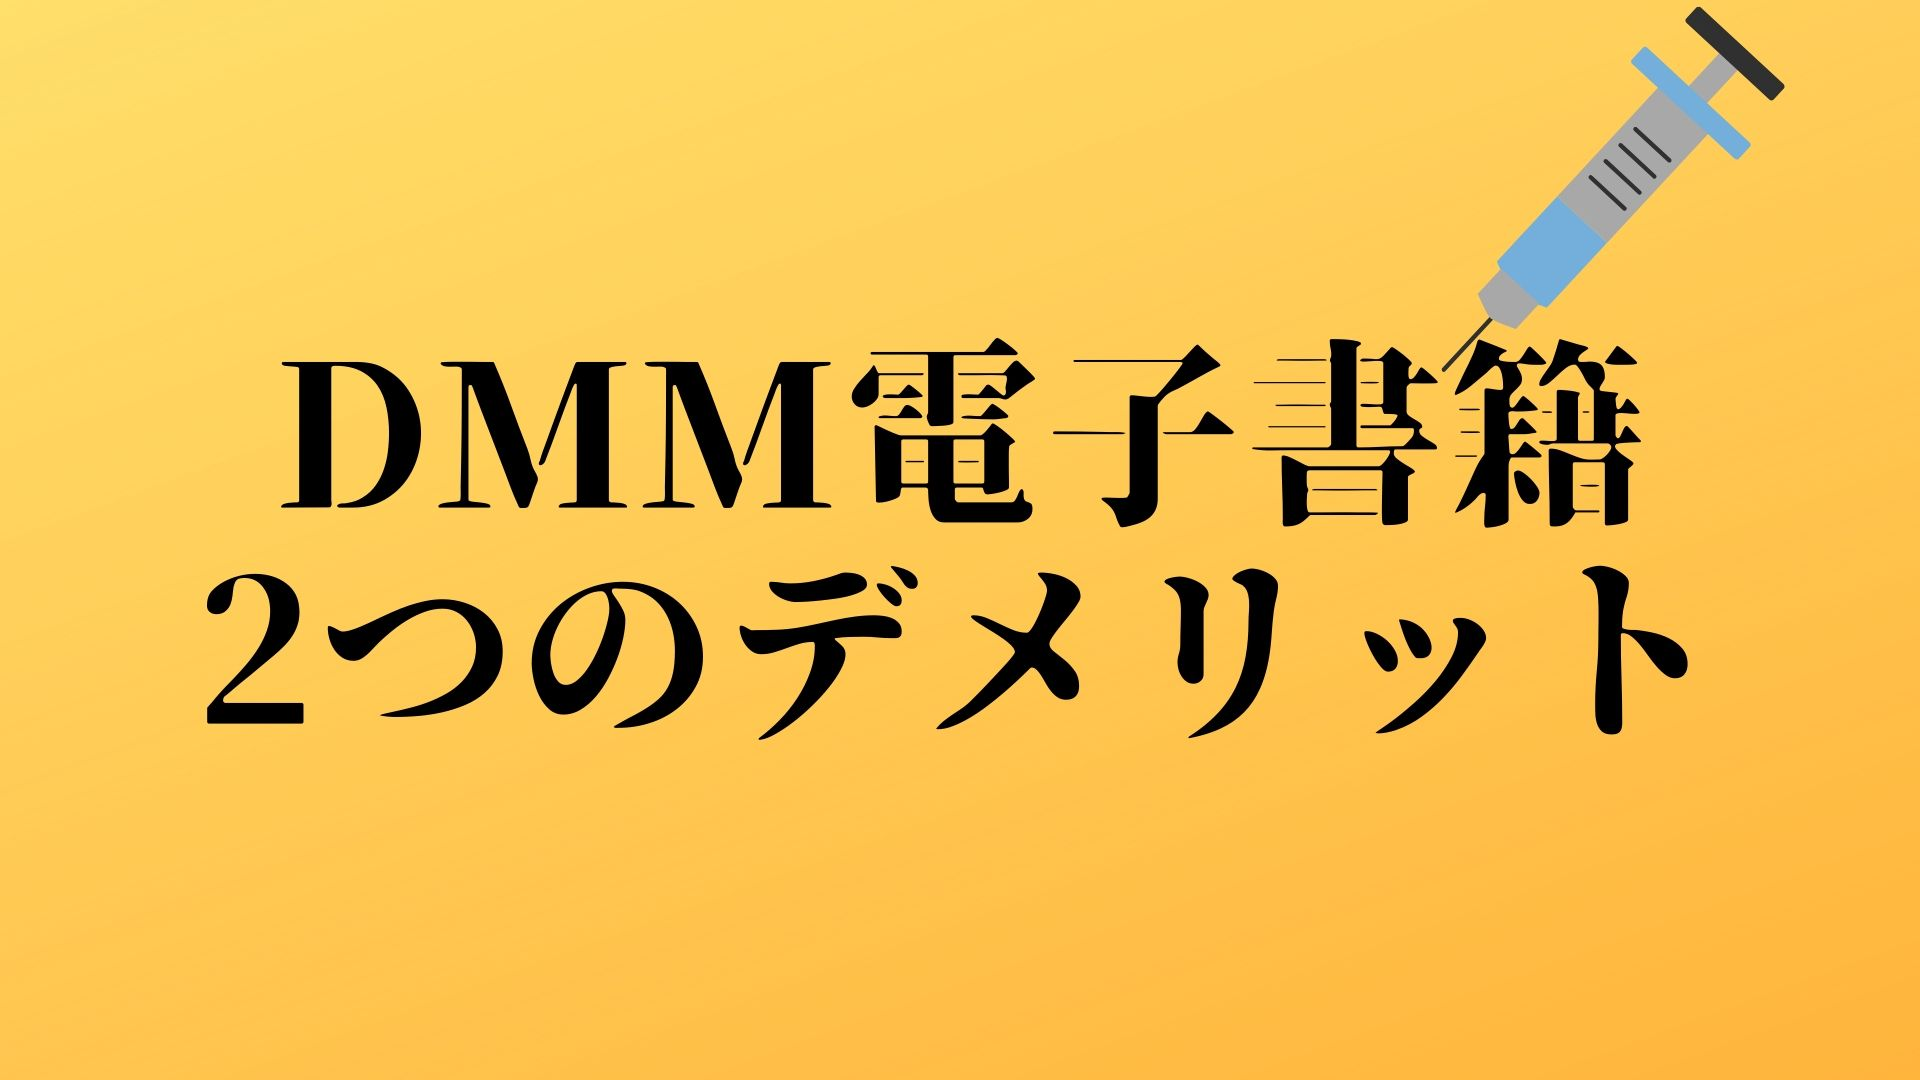 DMM電子書籍 2つのデメリット